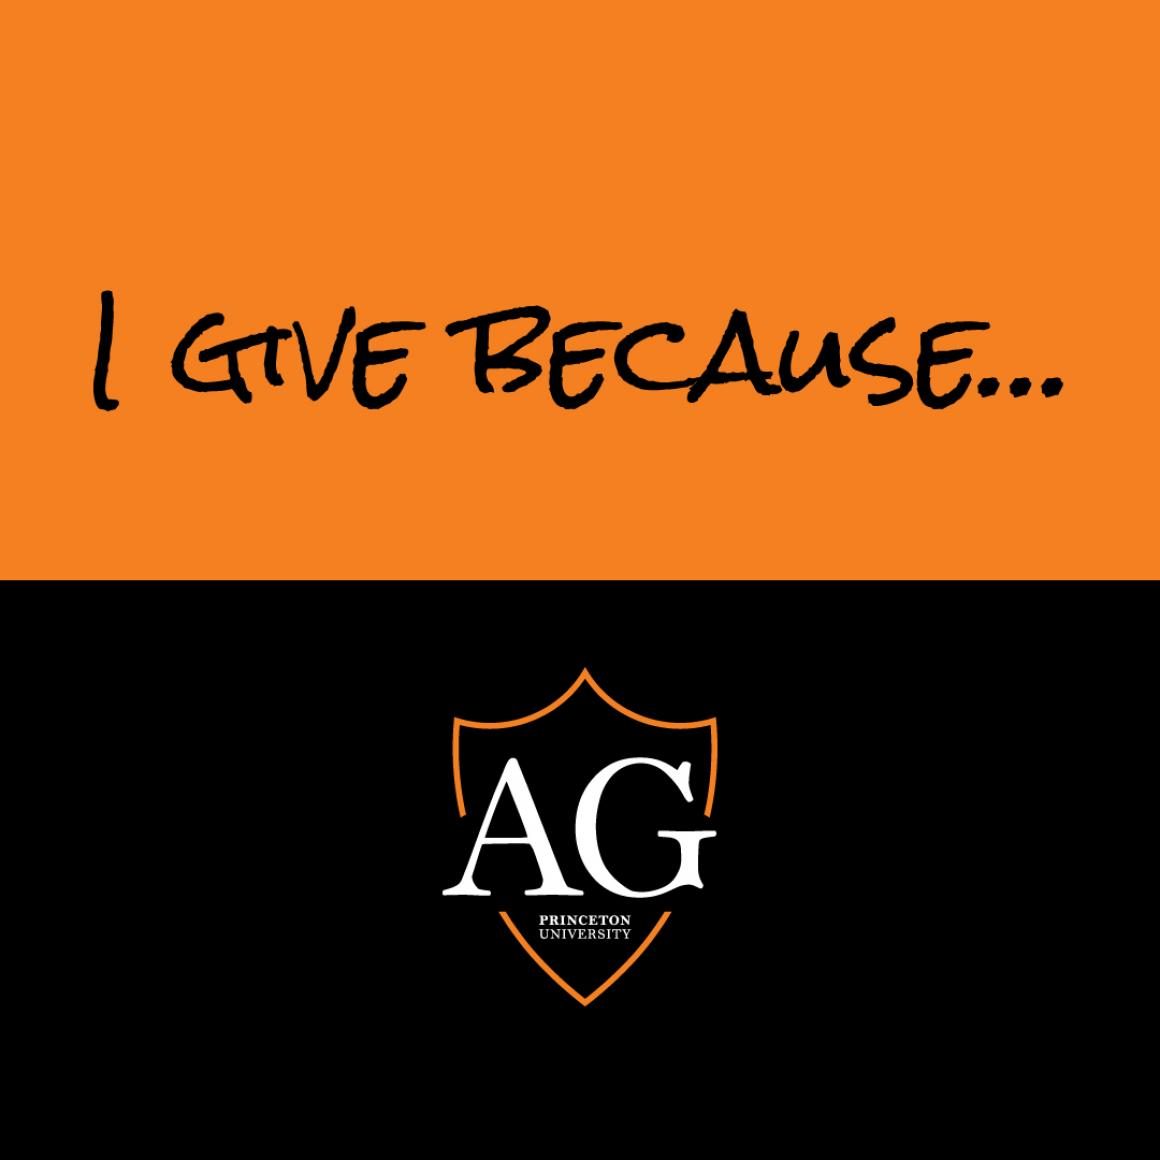 I give because Princeton Annual Giving